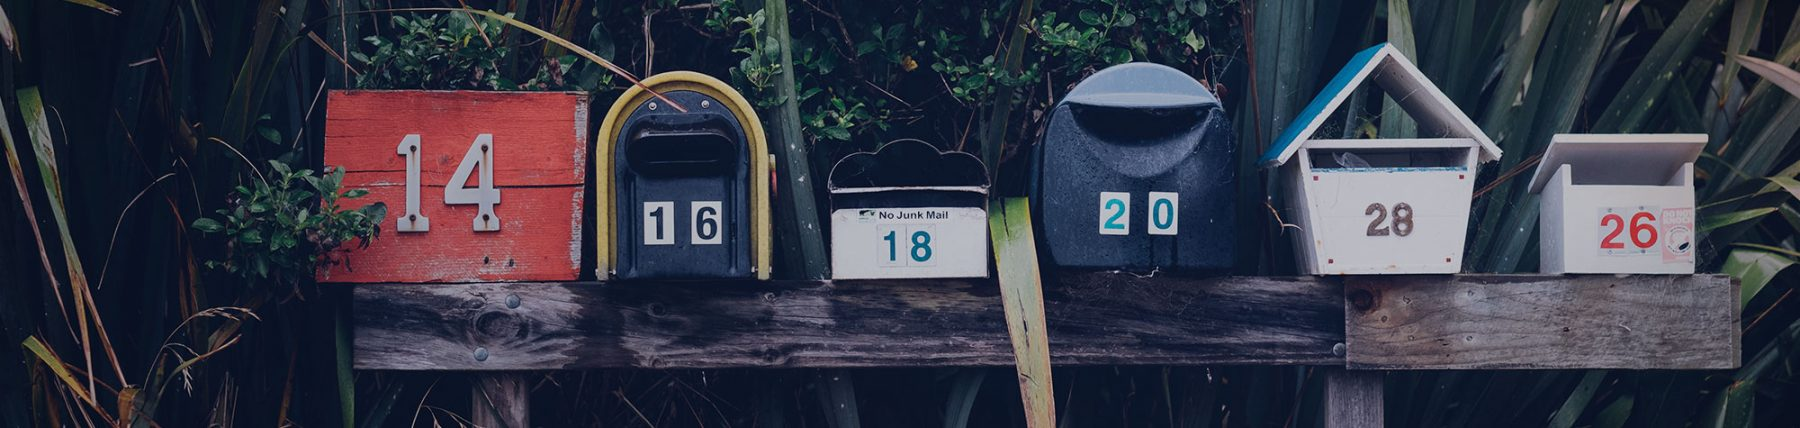 Our 2 Biggest Tips for Mailer Success